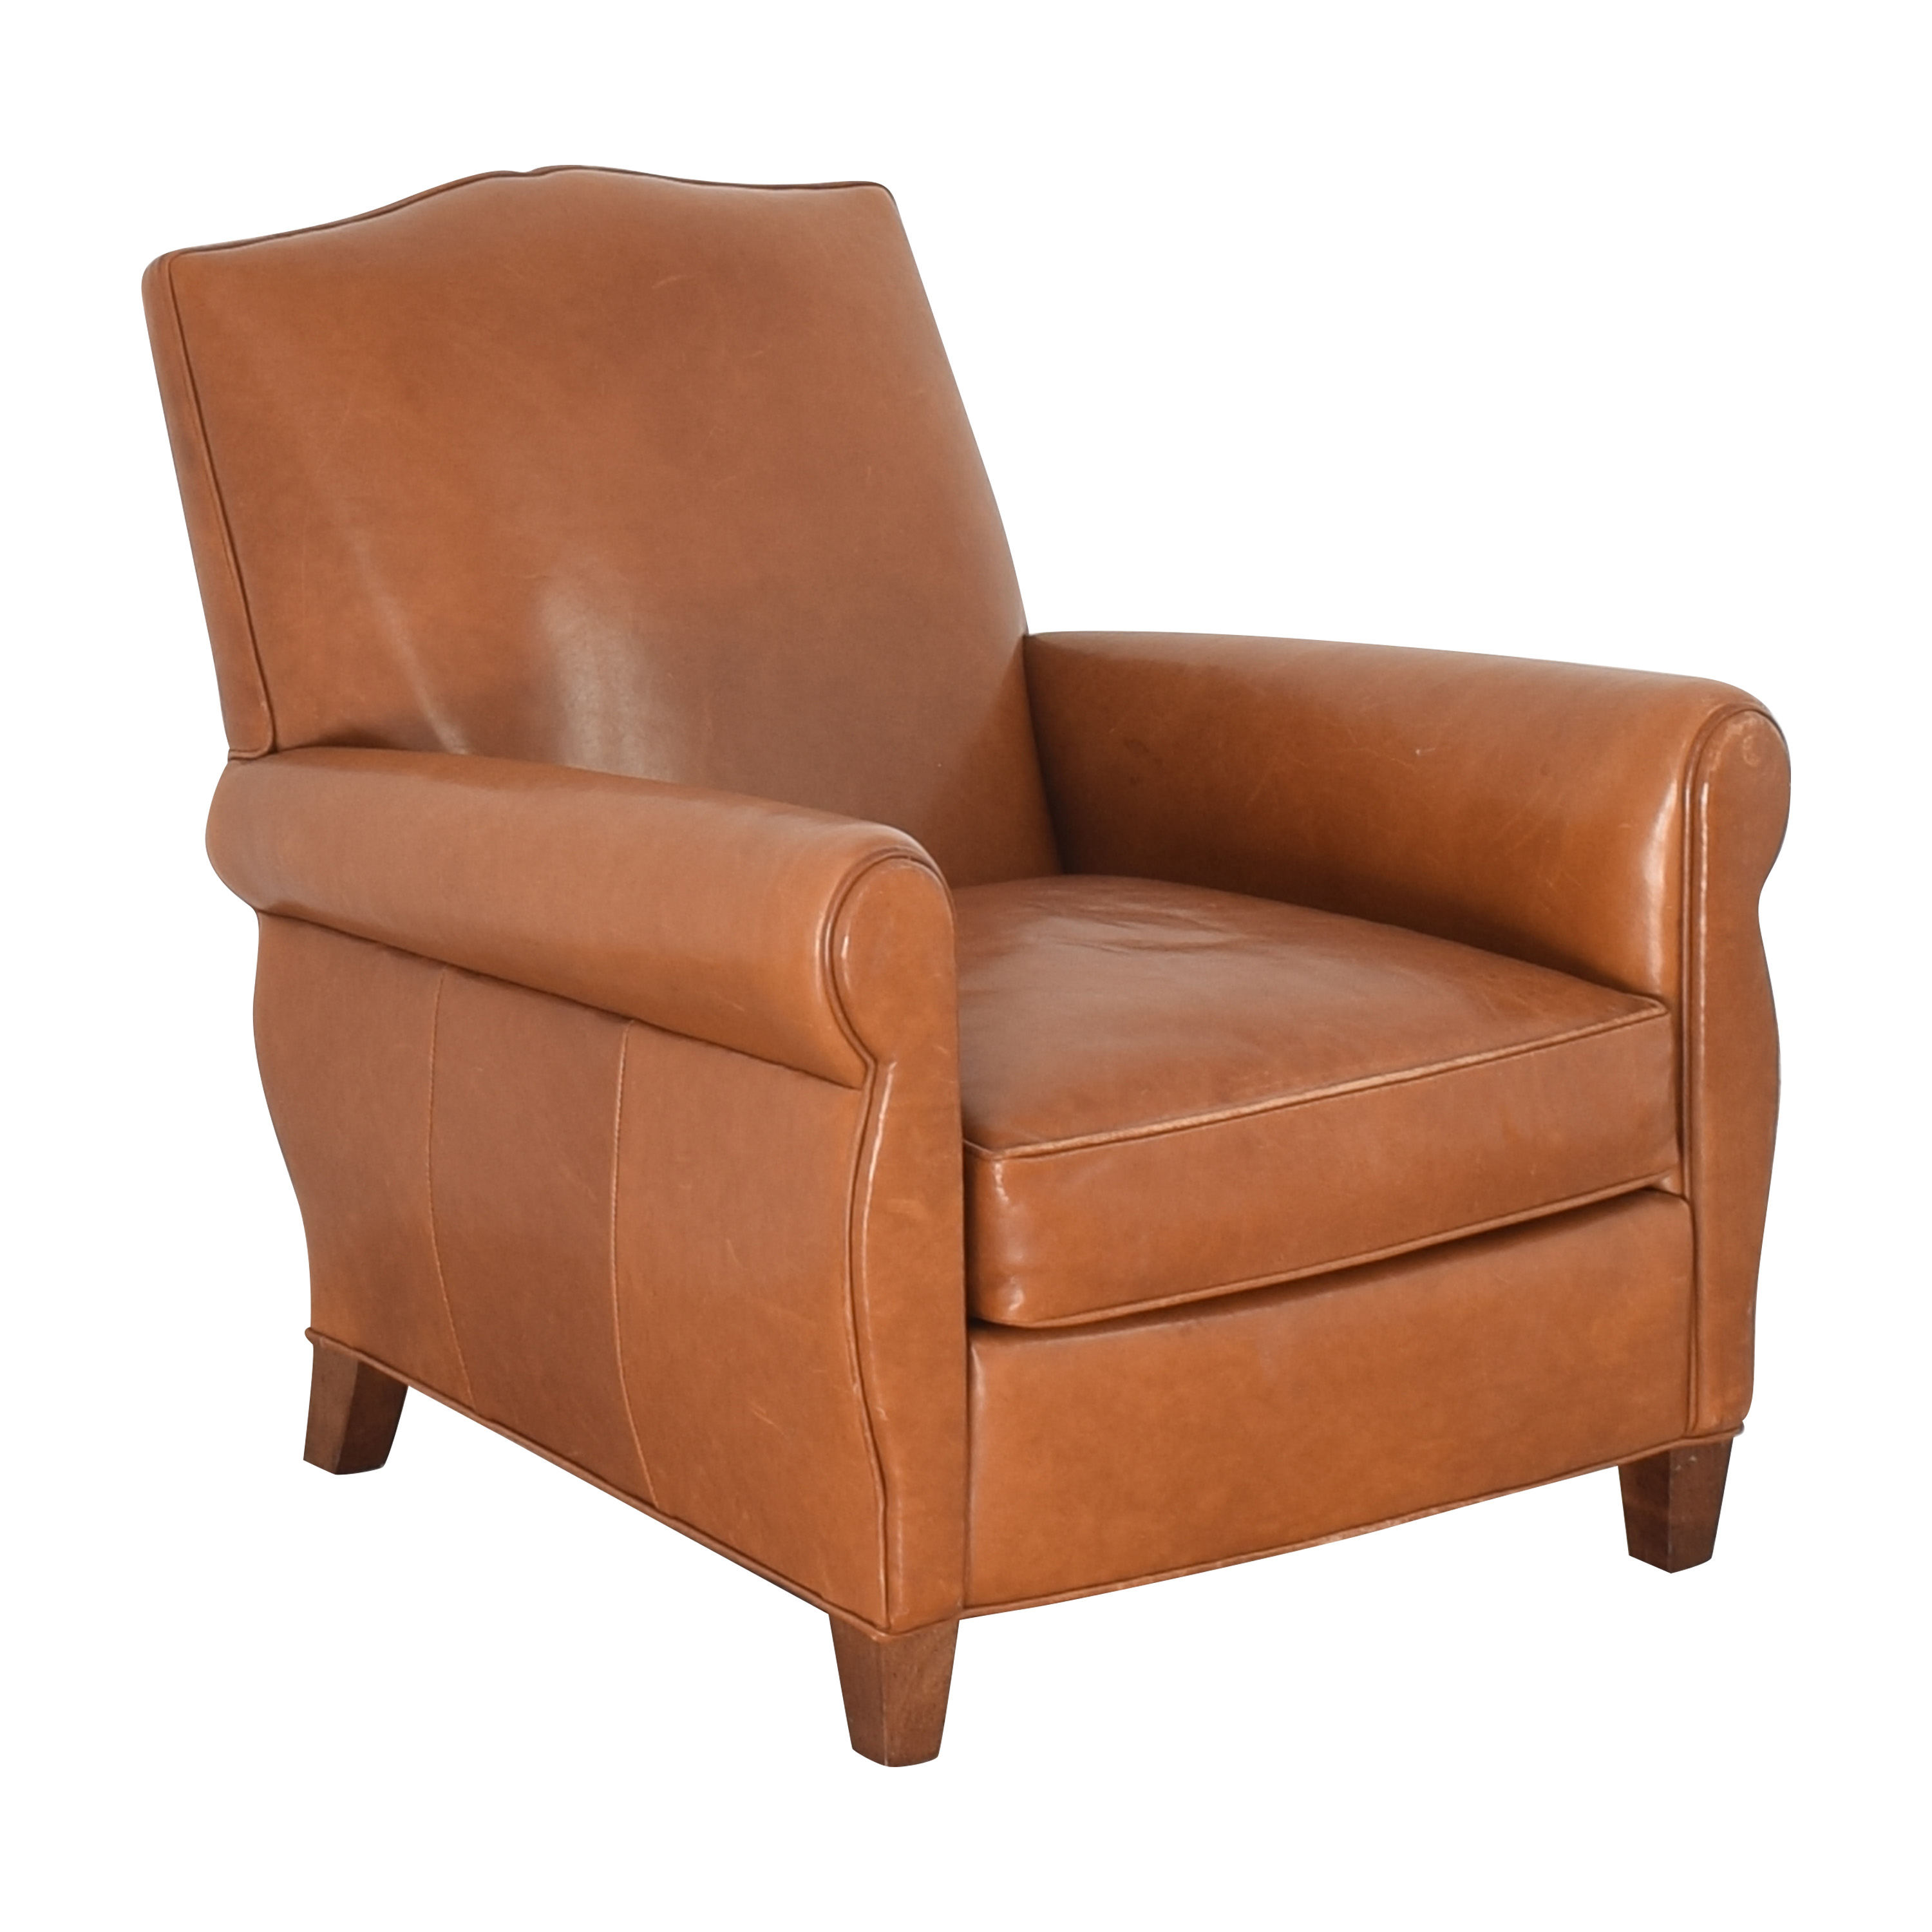 Lee Industries Lee Industries Accent Chair Chairs